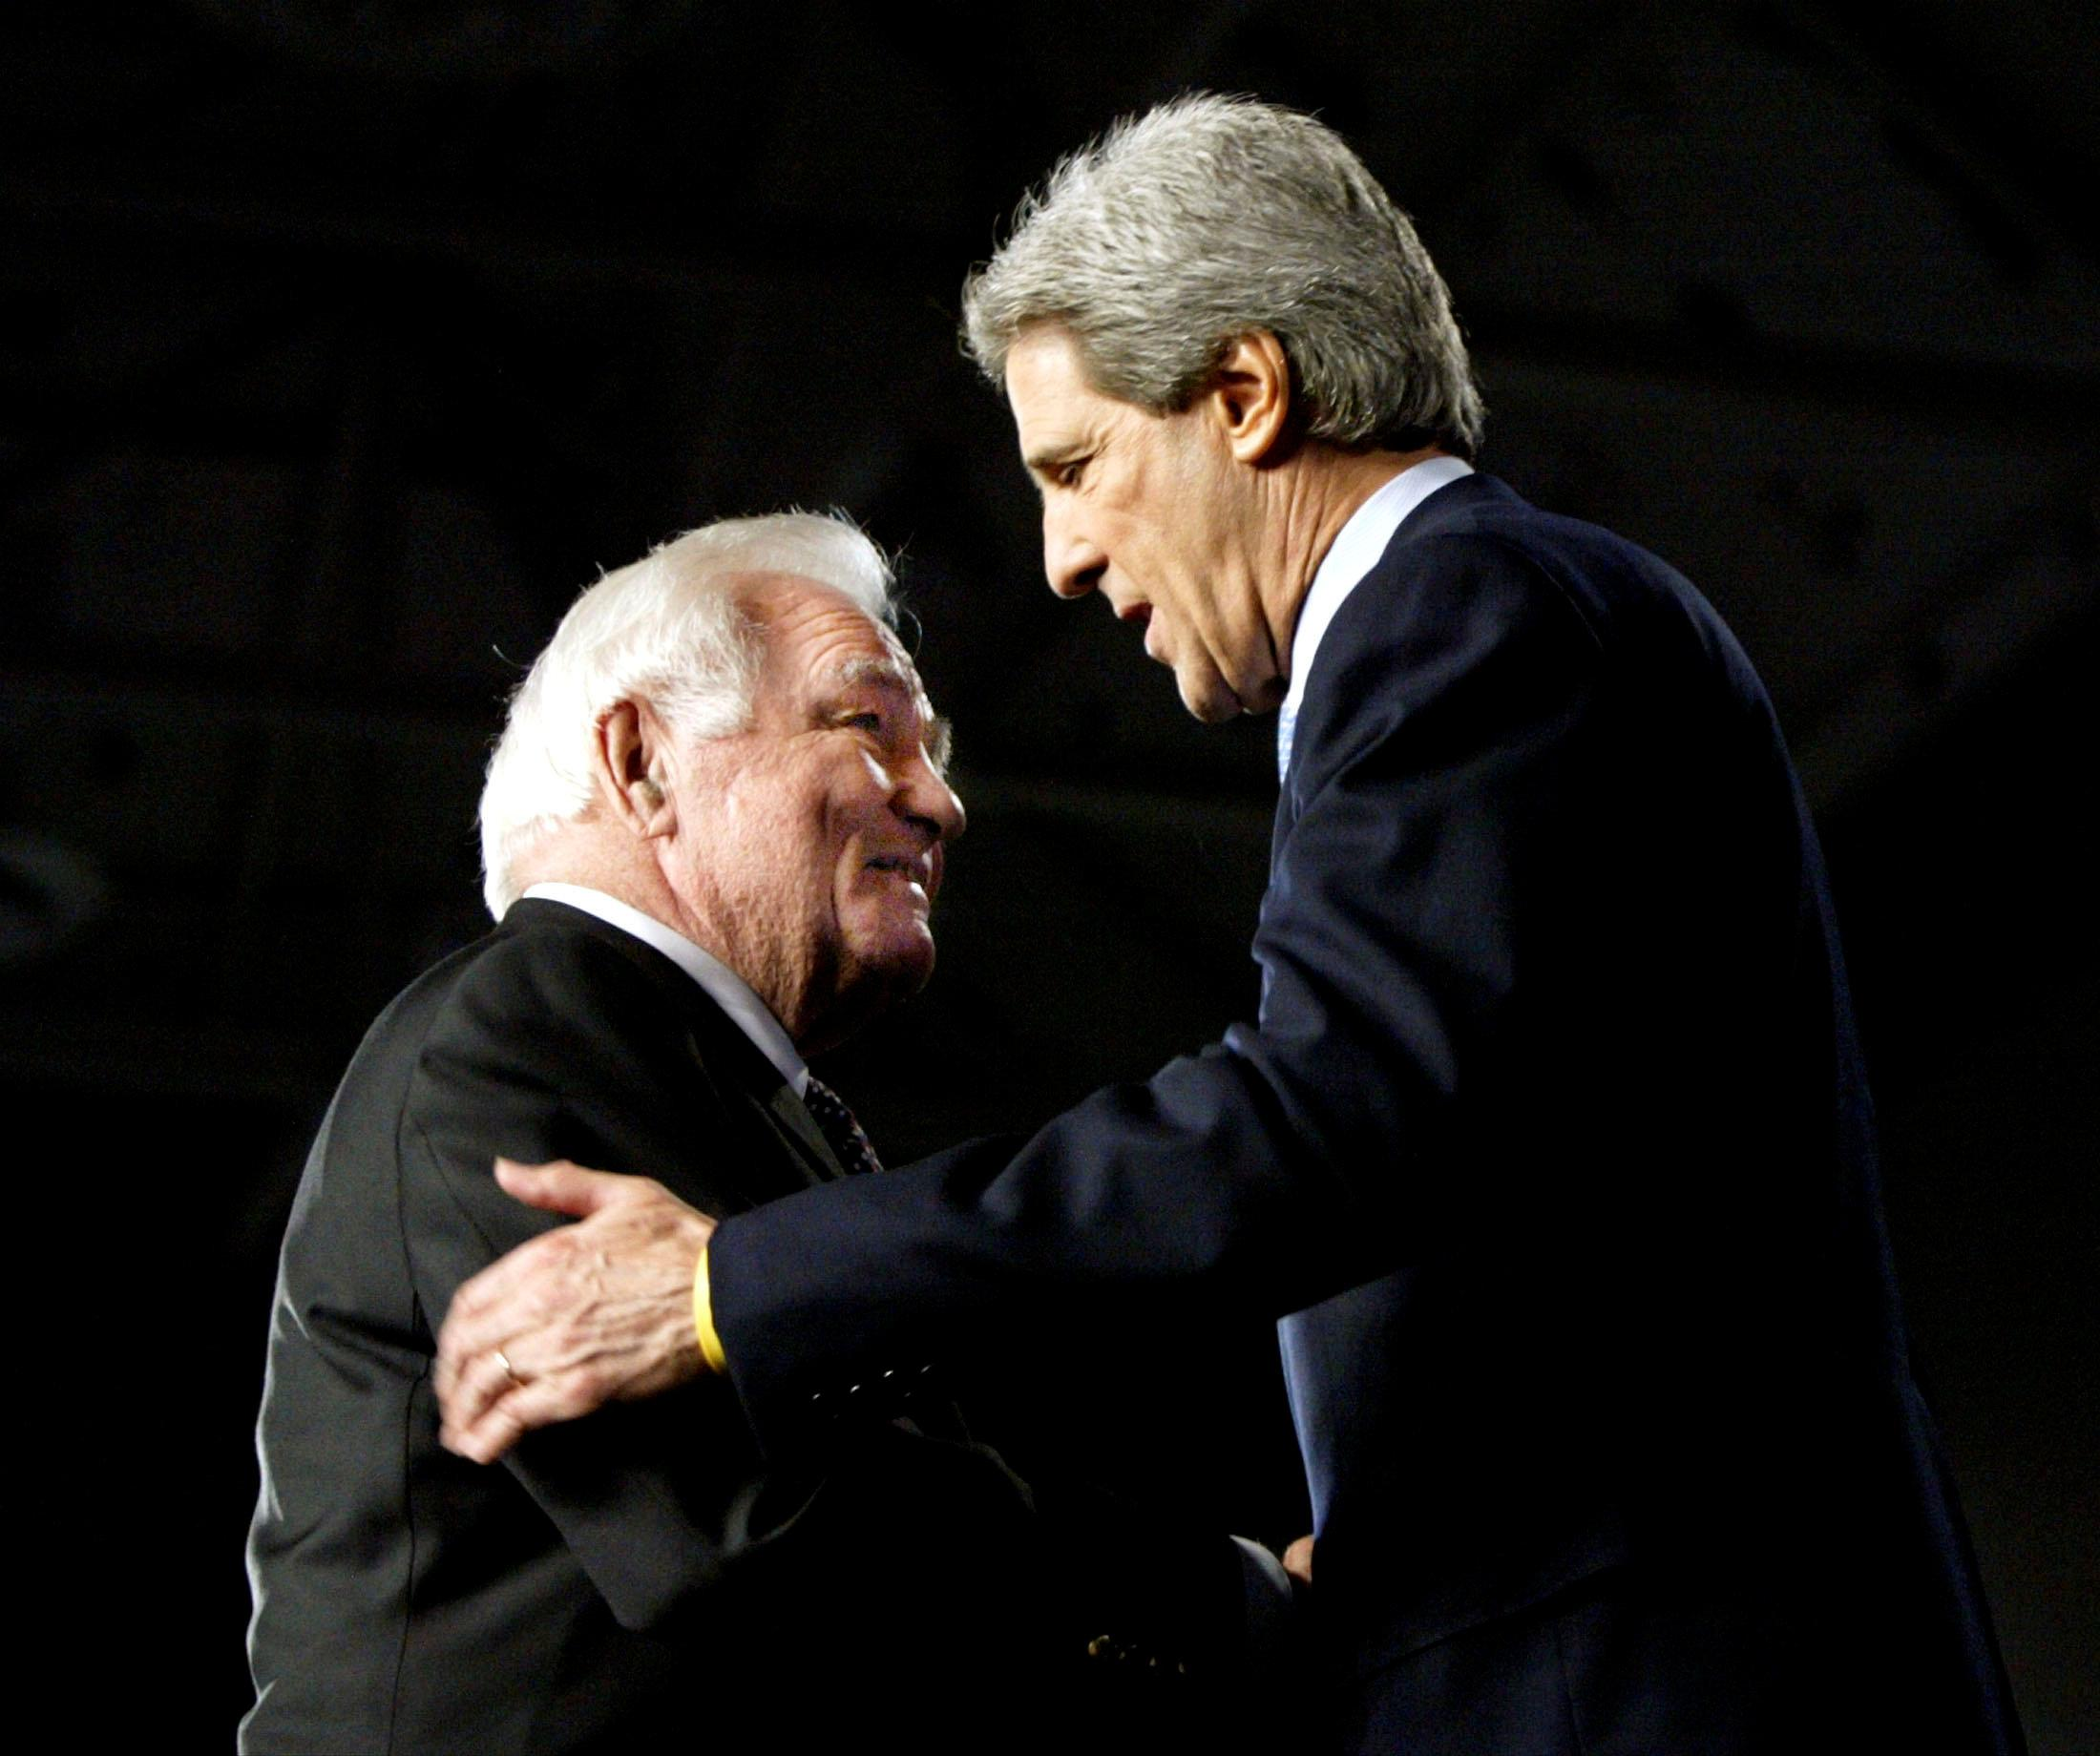 Retired Admiral Stansfield Turner (L) shakes hands with Democratic presidential nominee John Kerry after introducing Kerry in Waterloo, Iowa October 20, 2004. Brian Snyder